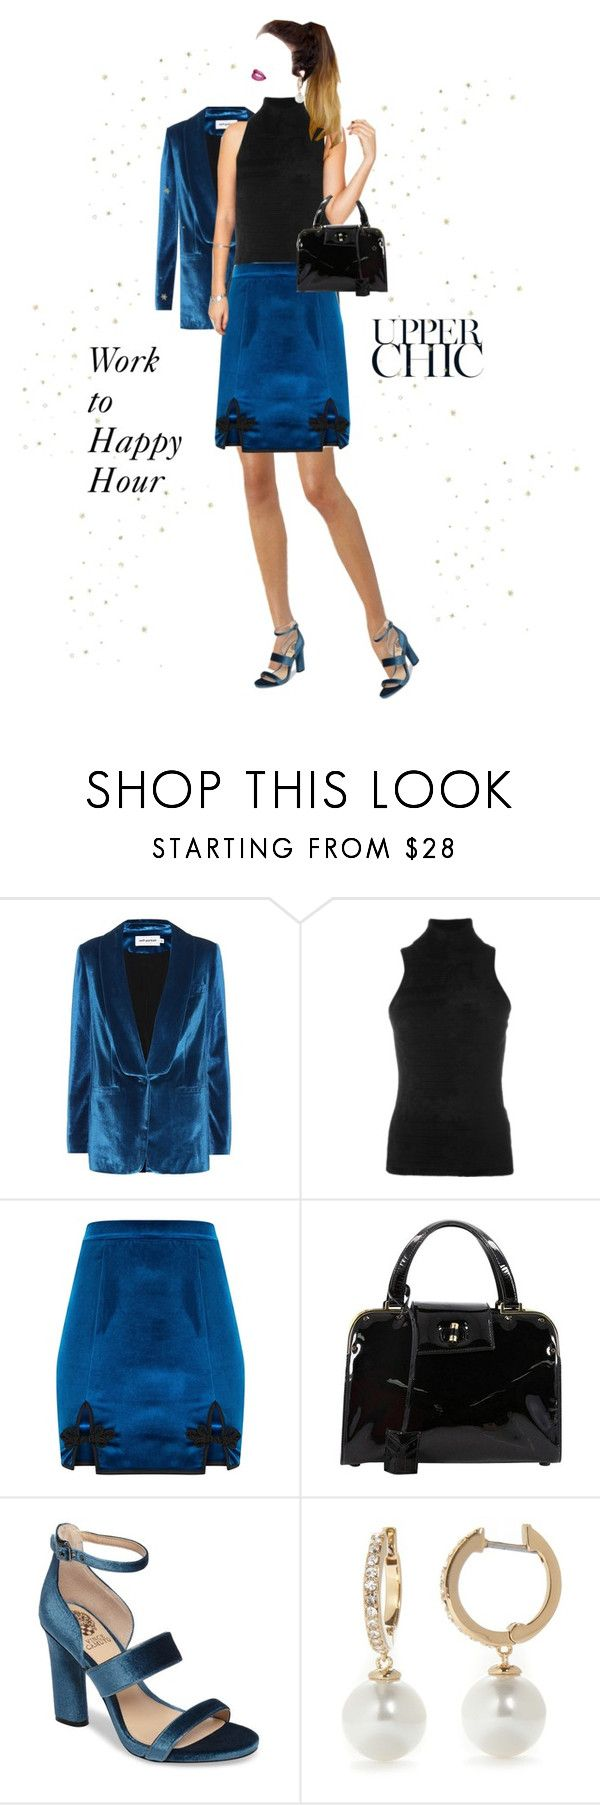 """""""Transitioning Roles"""" by shellygregory ❤ liked on Polyvore featuring self-portrait, Antonio Marras, Yves Saint Laurent, Vince Camuto and Kate Spade"""